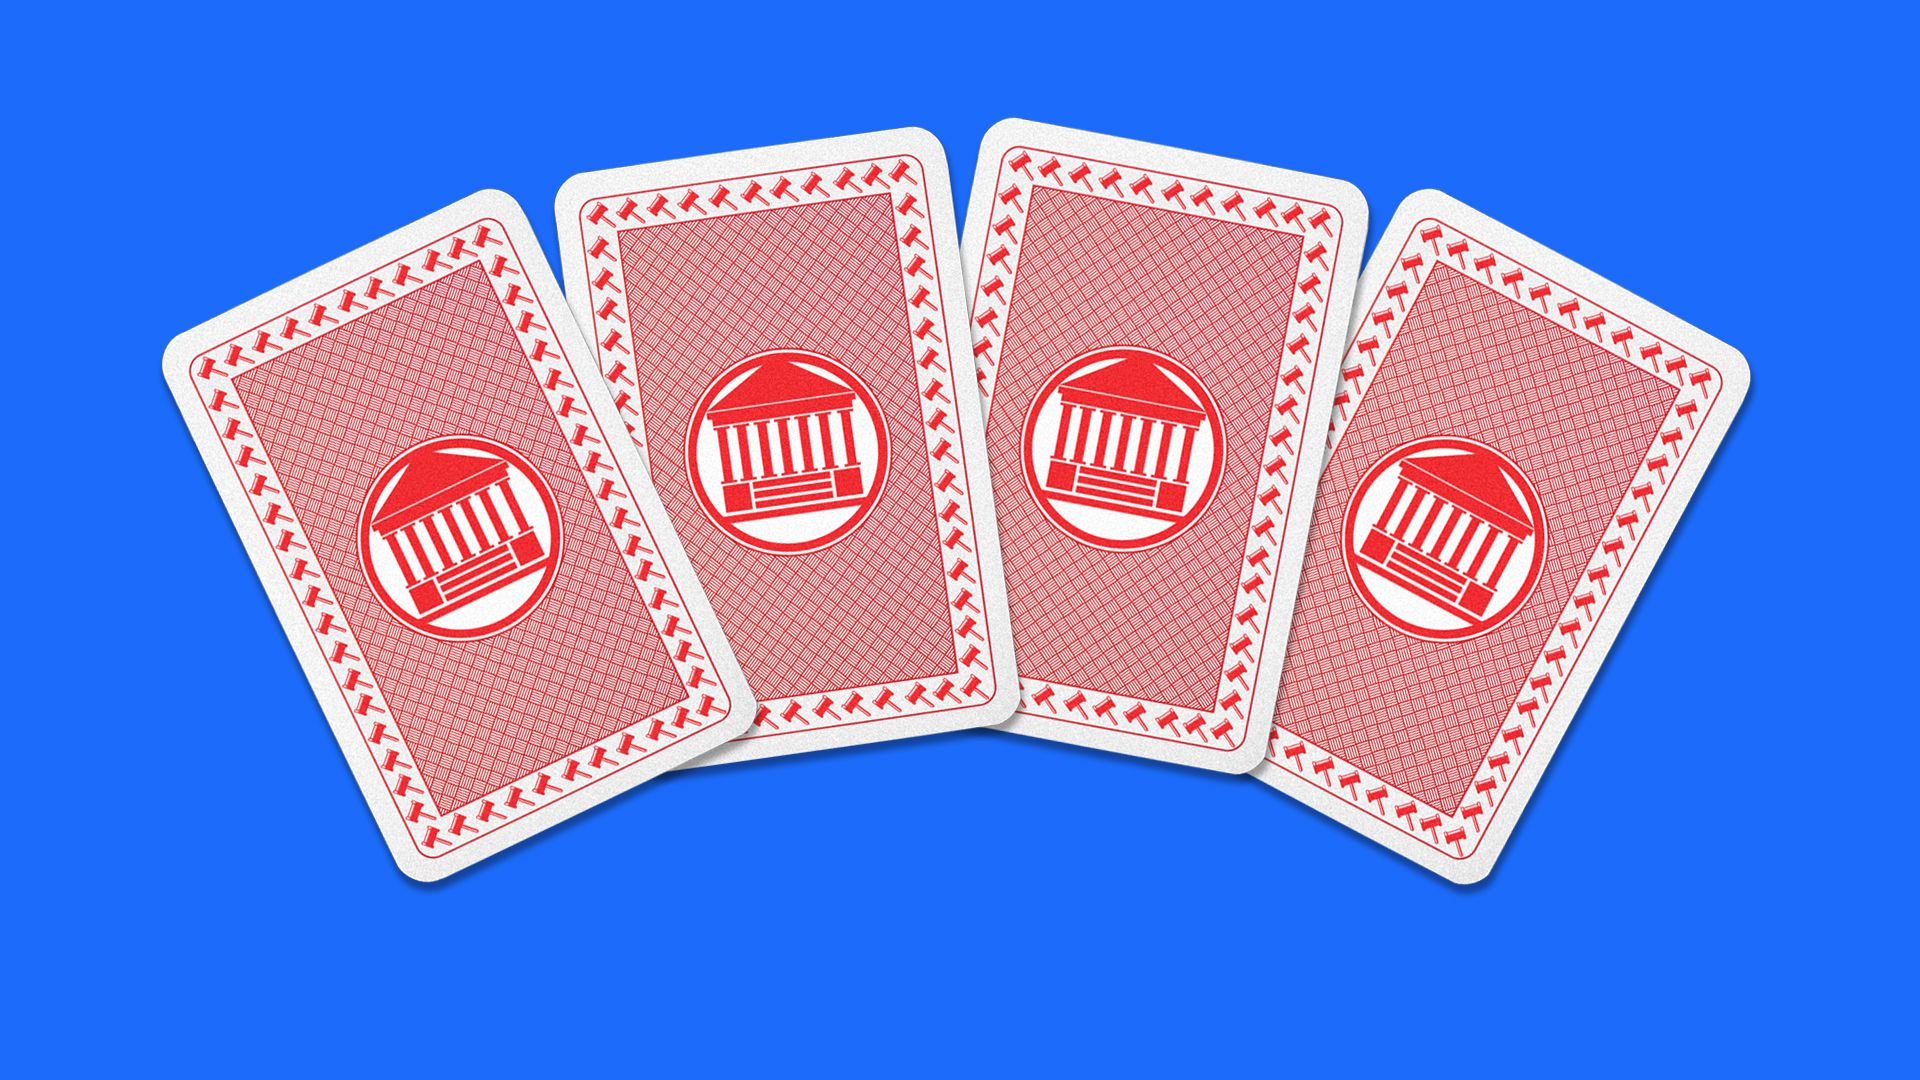 Illustration of 4 cards with the supreme court building shown on them